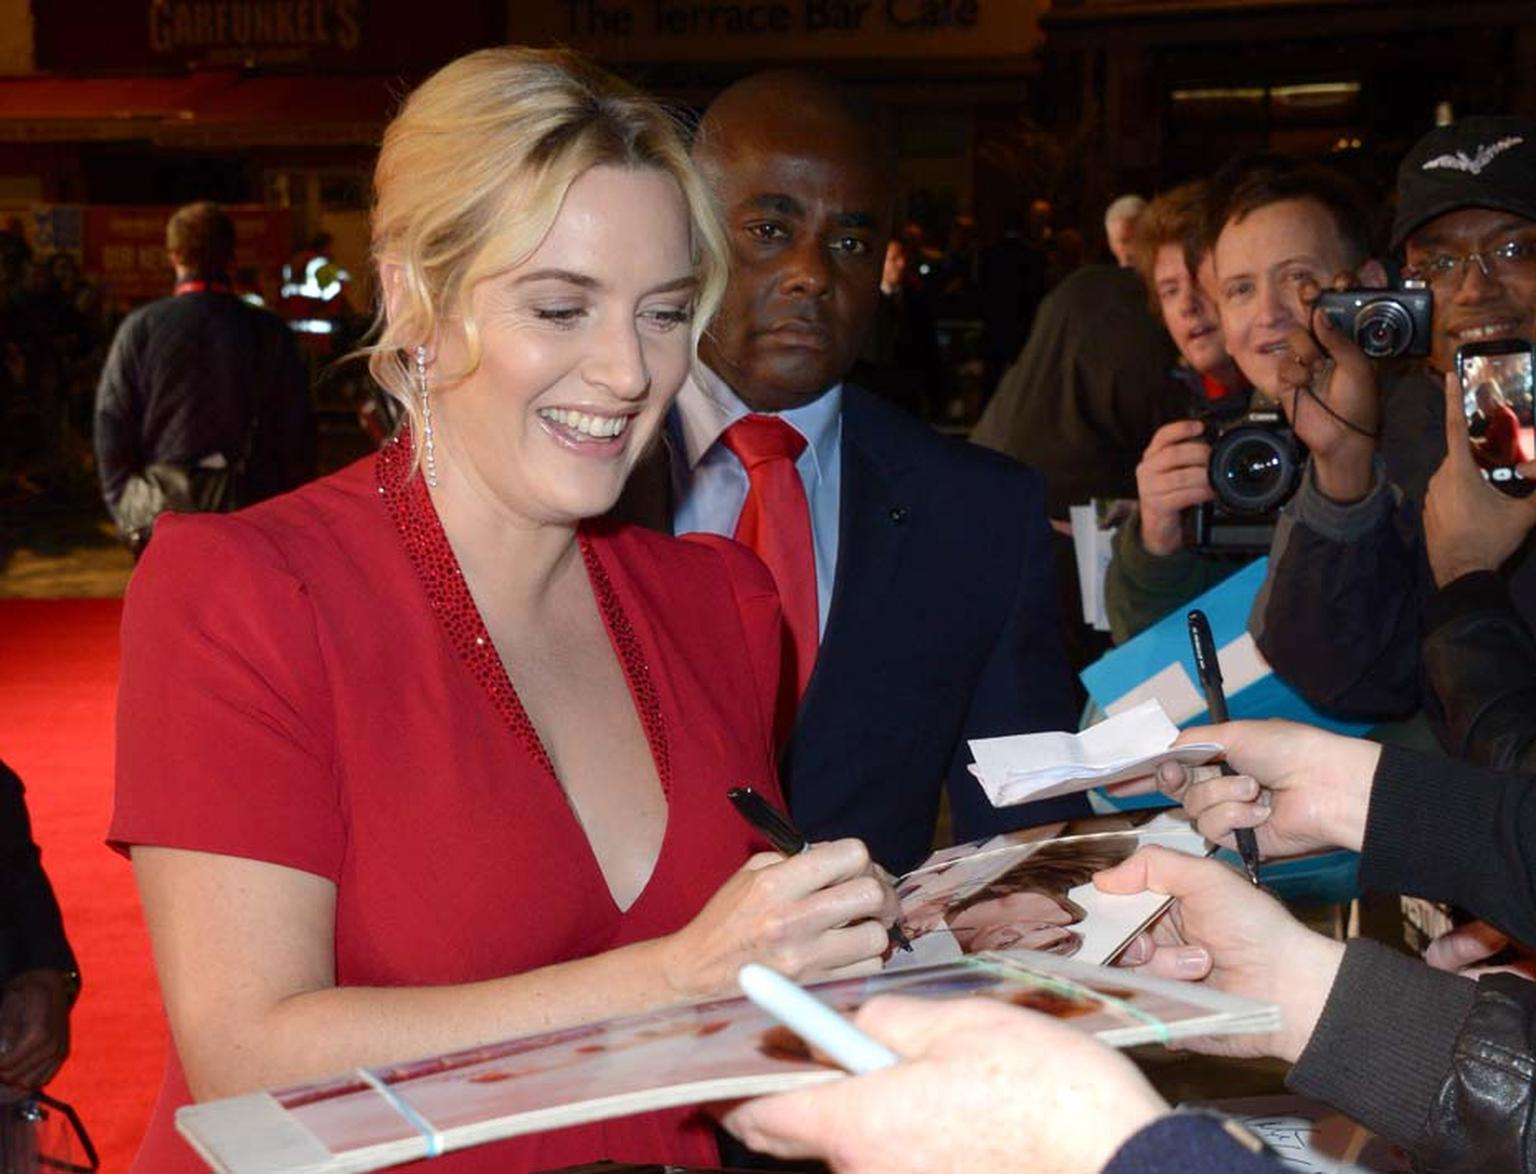 Kate Winslet signing autographs on the red carpet of the BFI London Film Festival. Image by: IWC/David M. Benett.